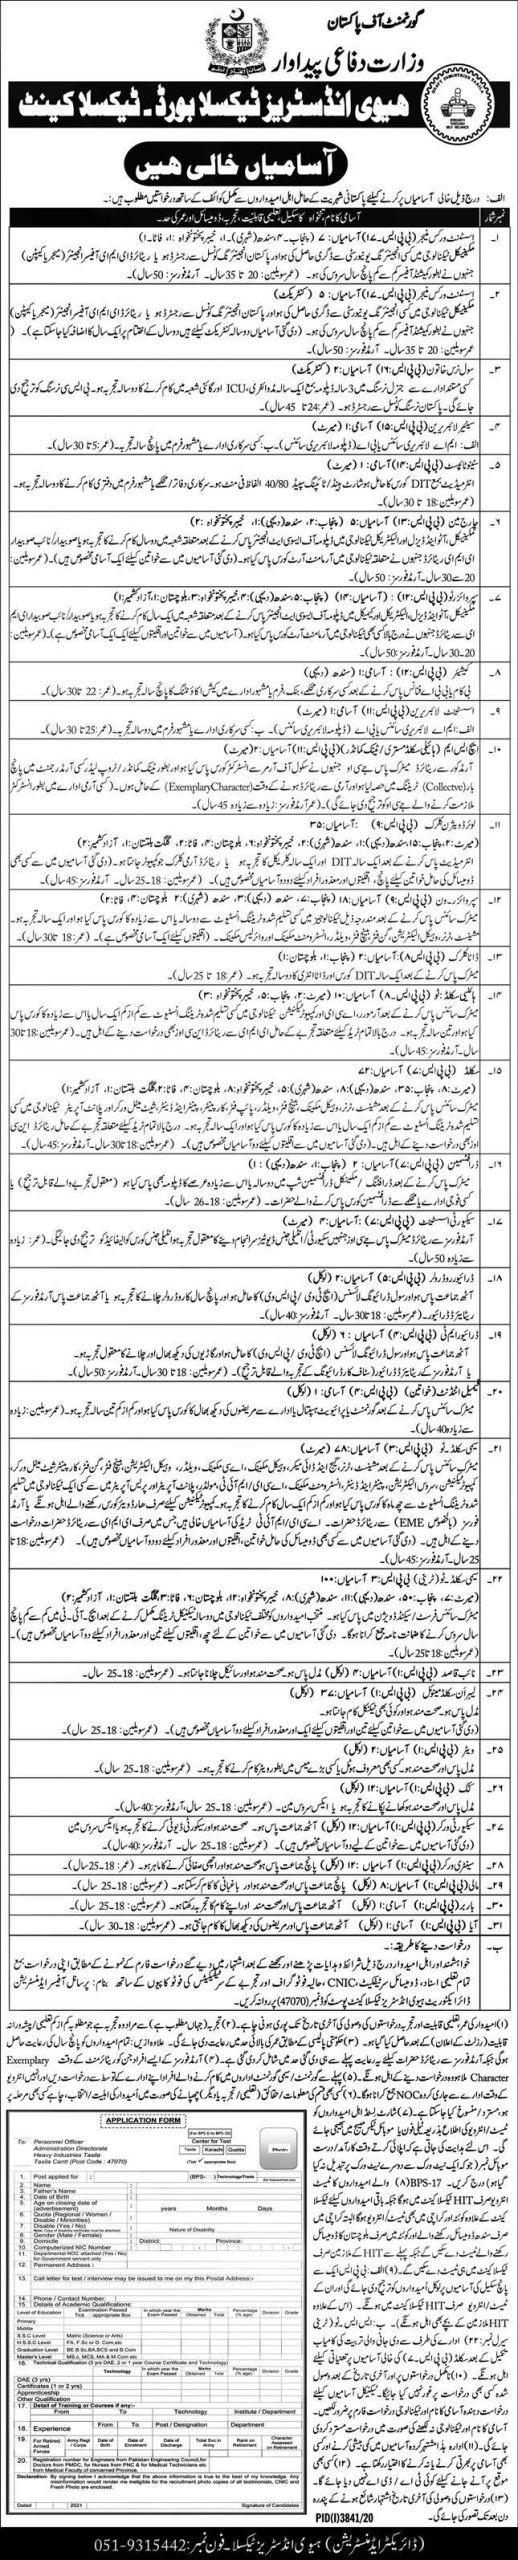 Senior Librarian (BPS-15) Jobs in Heavy Industries Taxila Board 26 Jan 2021